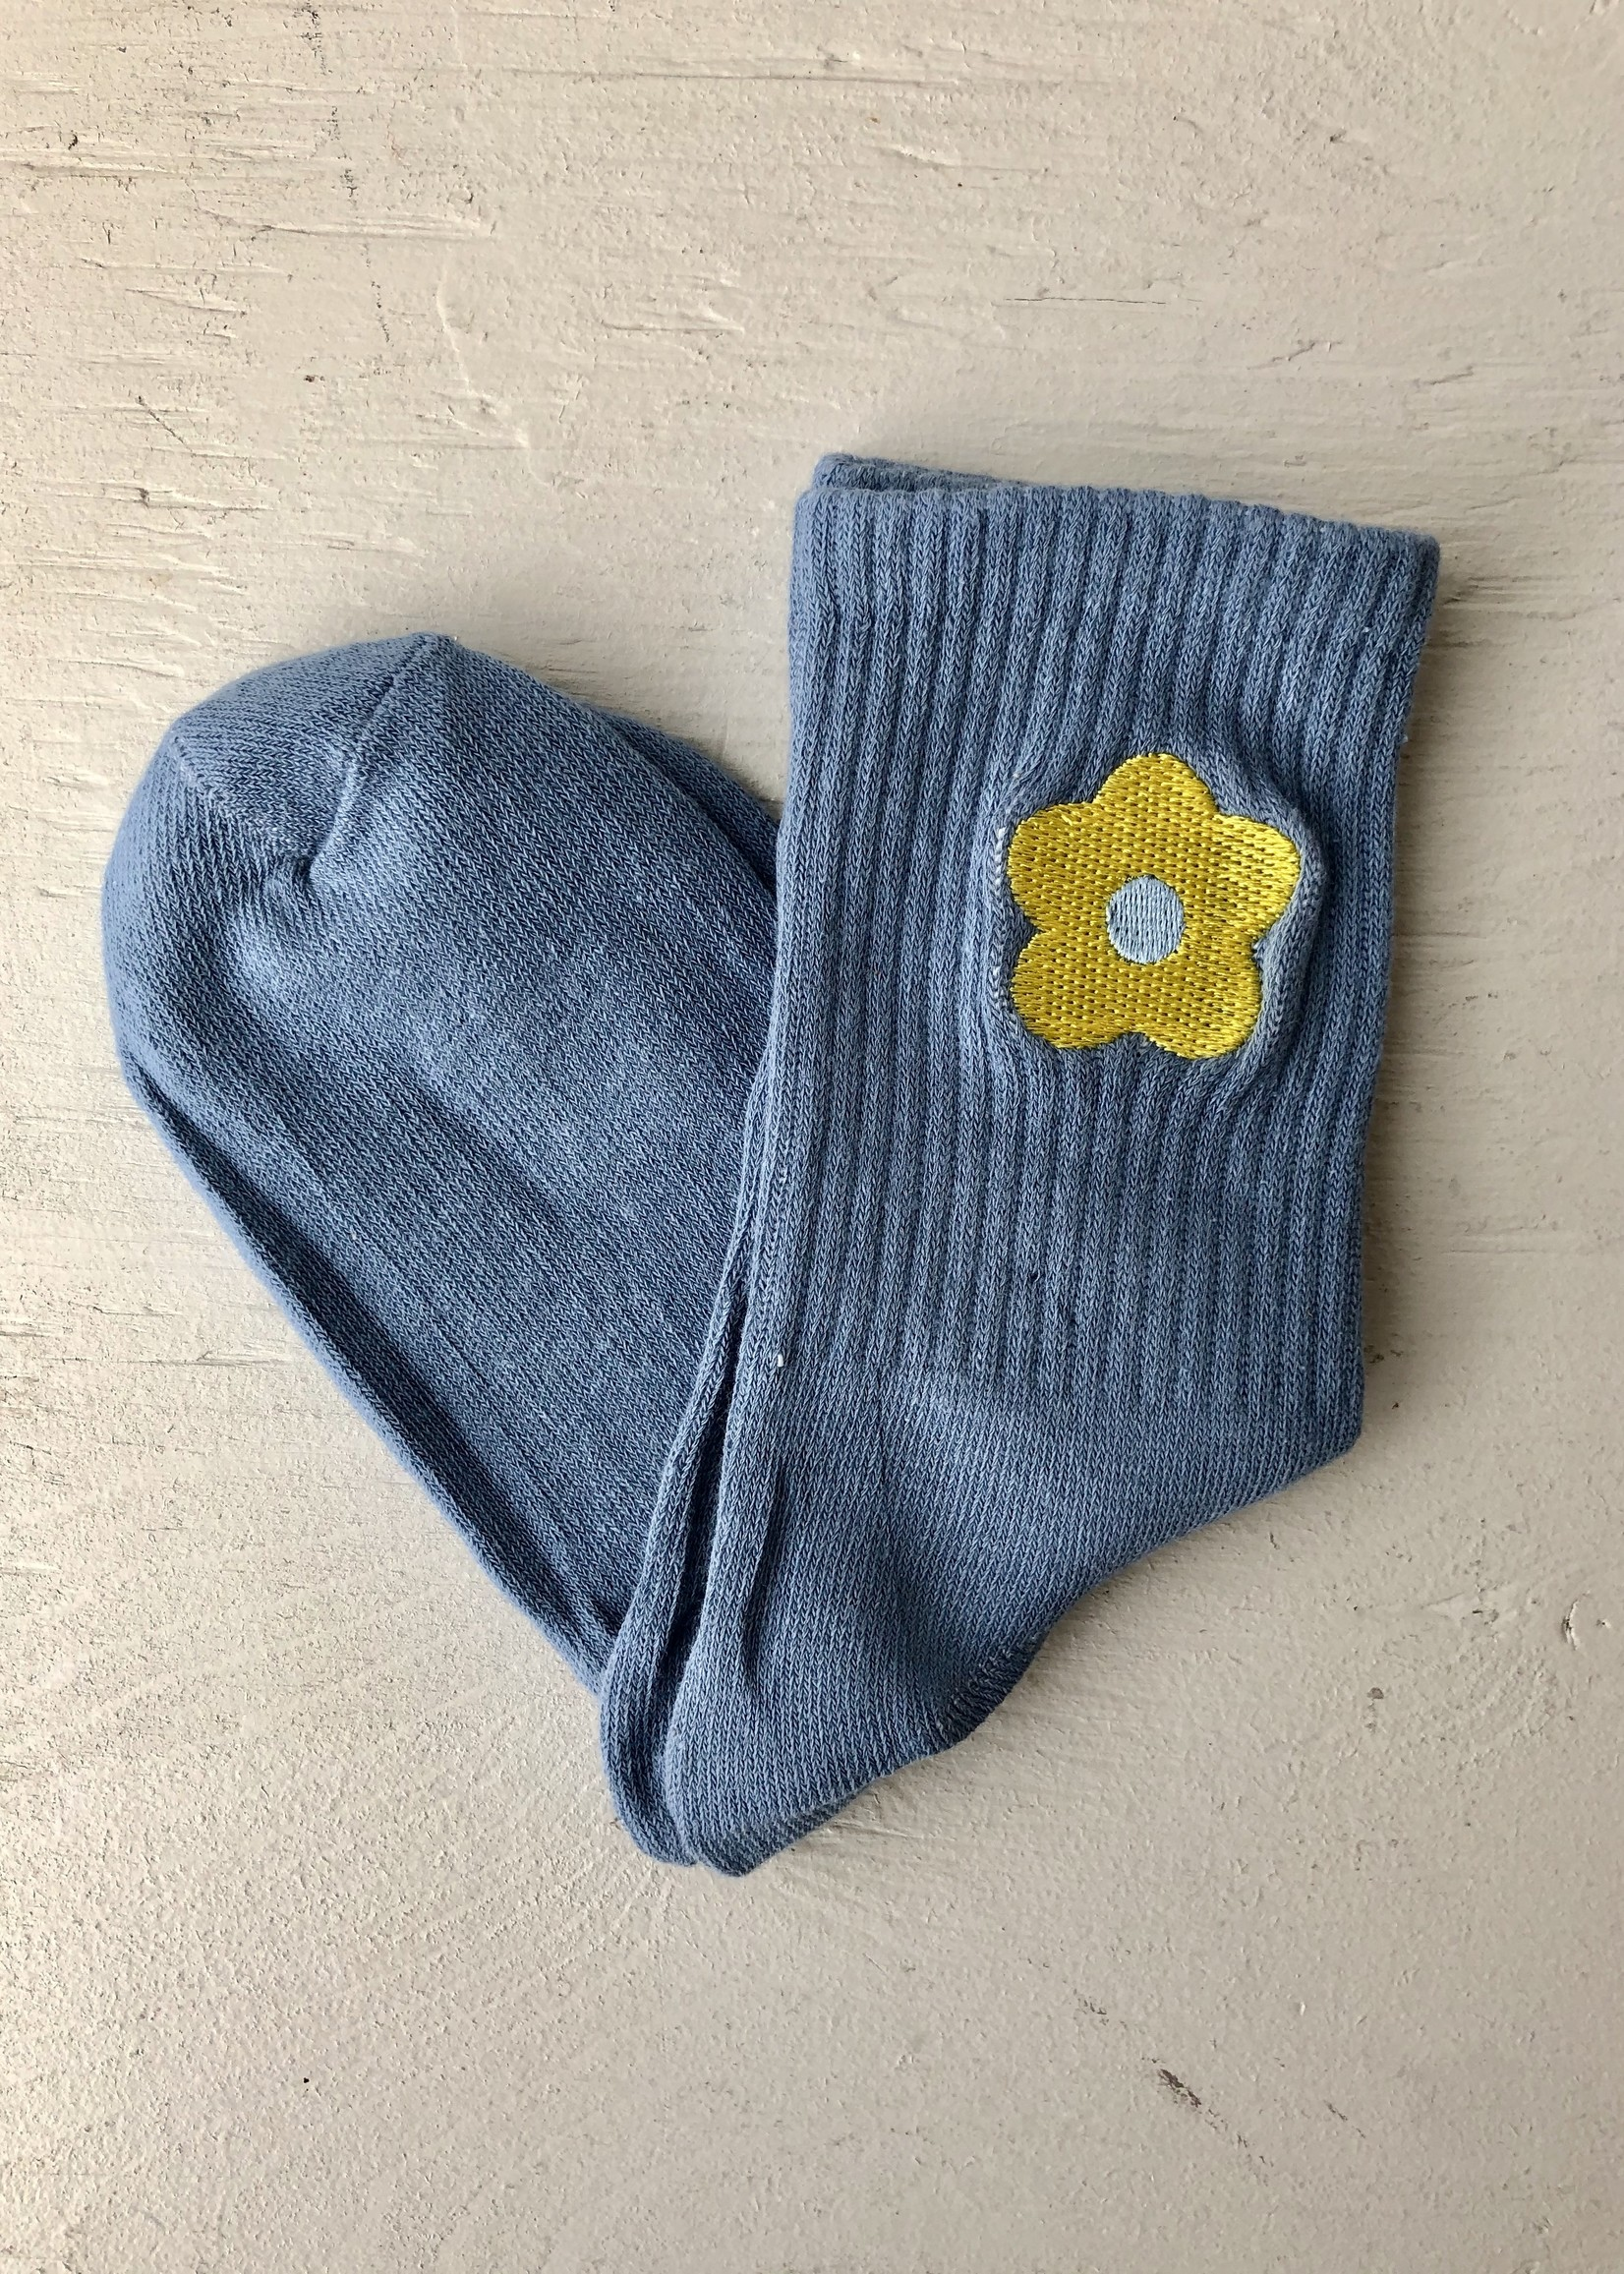 Empire Exchange Embroidered Daisy Socks